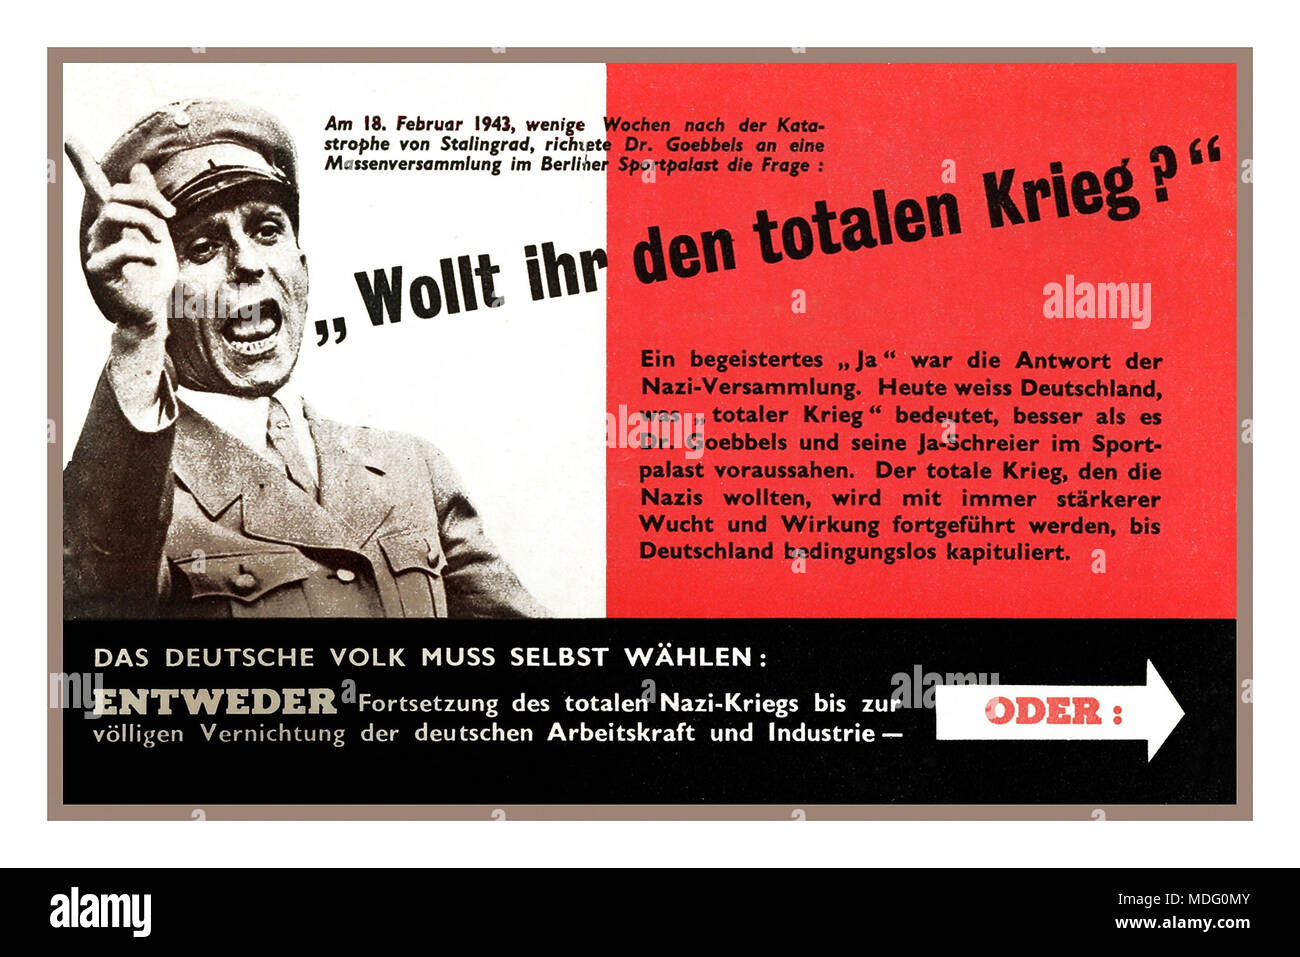 WW2 American Propaganda Leaflet air drop over Germany  'THE GERMAN PEOPLE MUST CHOOSE FOR THEMSELVES'... 'EITHER continuation of the total Nazi-war until final destruction of German man-power and industry' Featuring Joseph Goebbels a German Nazi politician and Reich Minister of Propaganda of Nazi Germany from 1933 to 1945 USA 8th Air Force psychological warfare leaflet 1940's Stock Photo